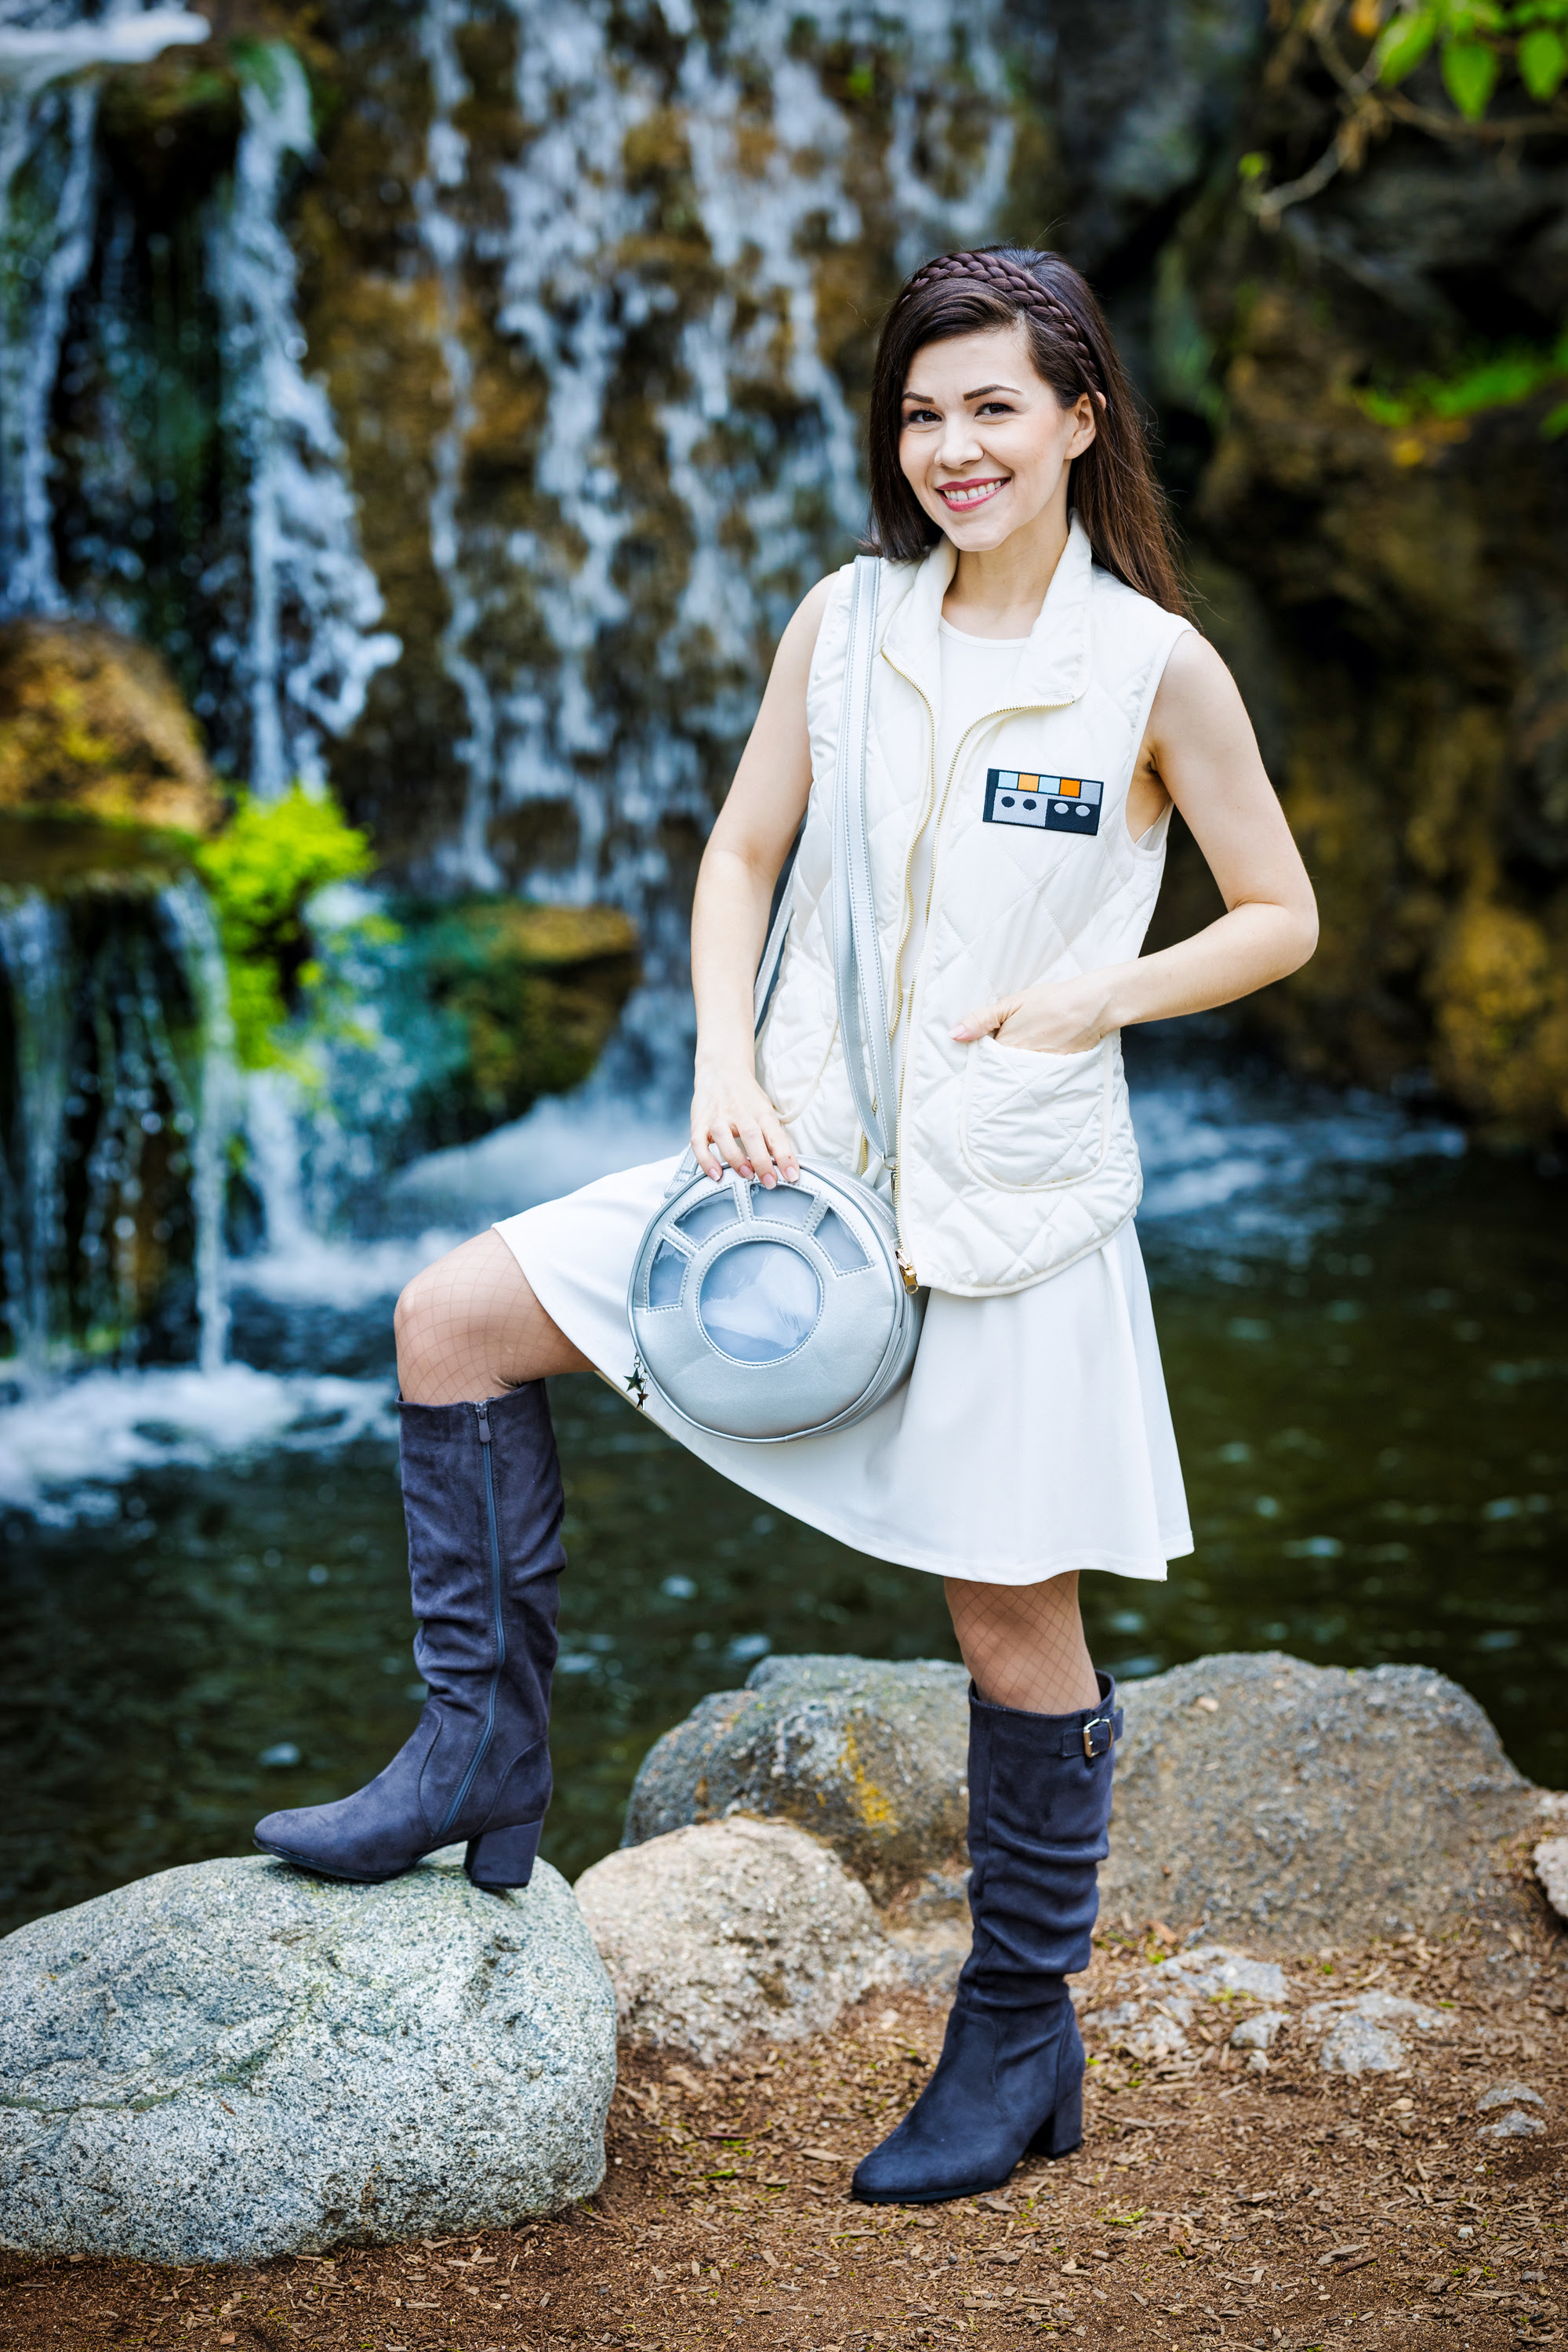 Star Wars Bound: Princess Leia on Hoth - May the 4th | Anakin and His Angel